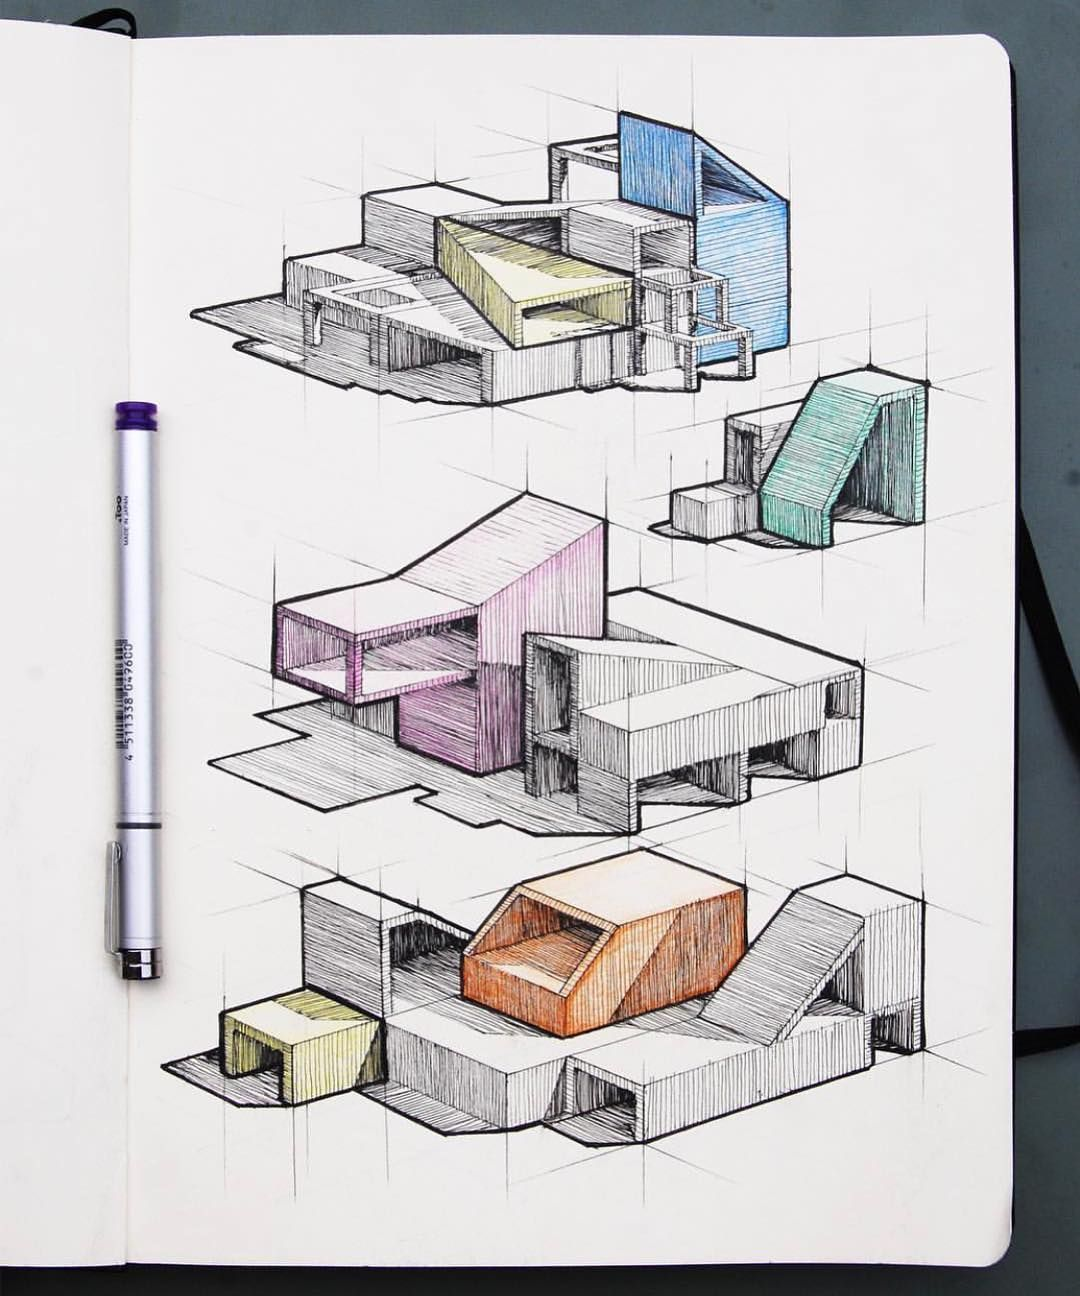 """CritDay - Daily Architecture on Instagram: """"More Isometric Perspective Sketches from @martijnvanberkum / - Send your drawings/models/projects @critday -> #itscritday #critday…"""" - Lauralee"""